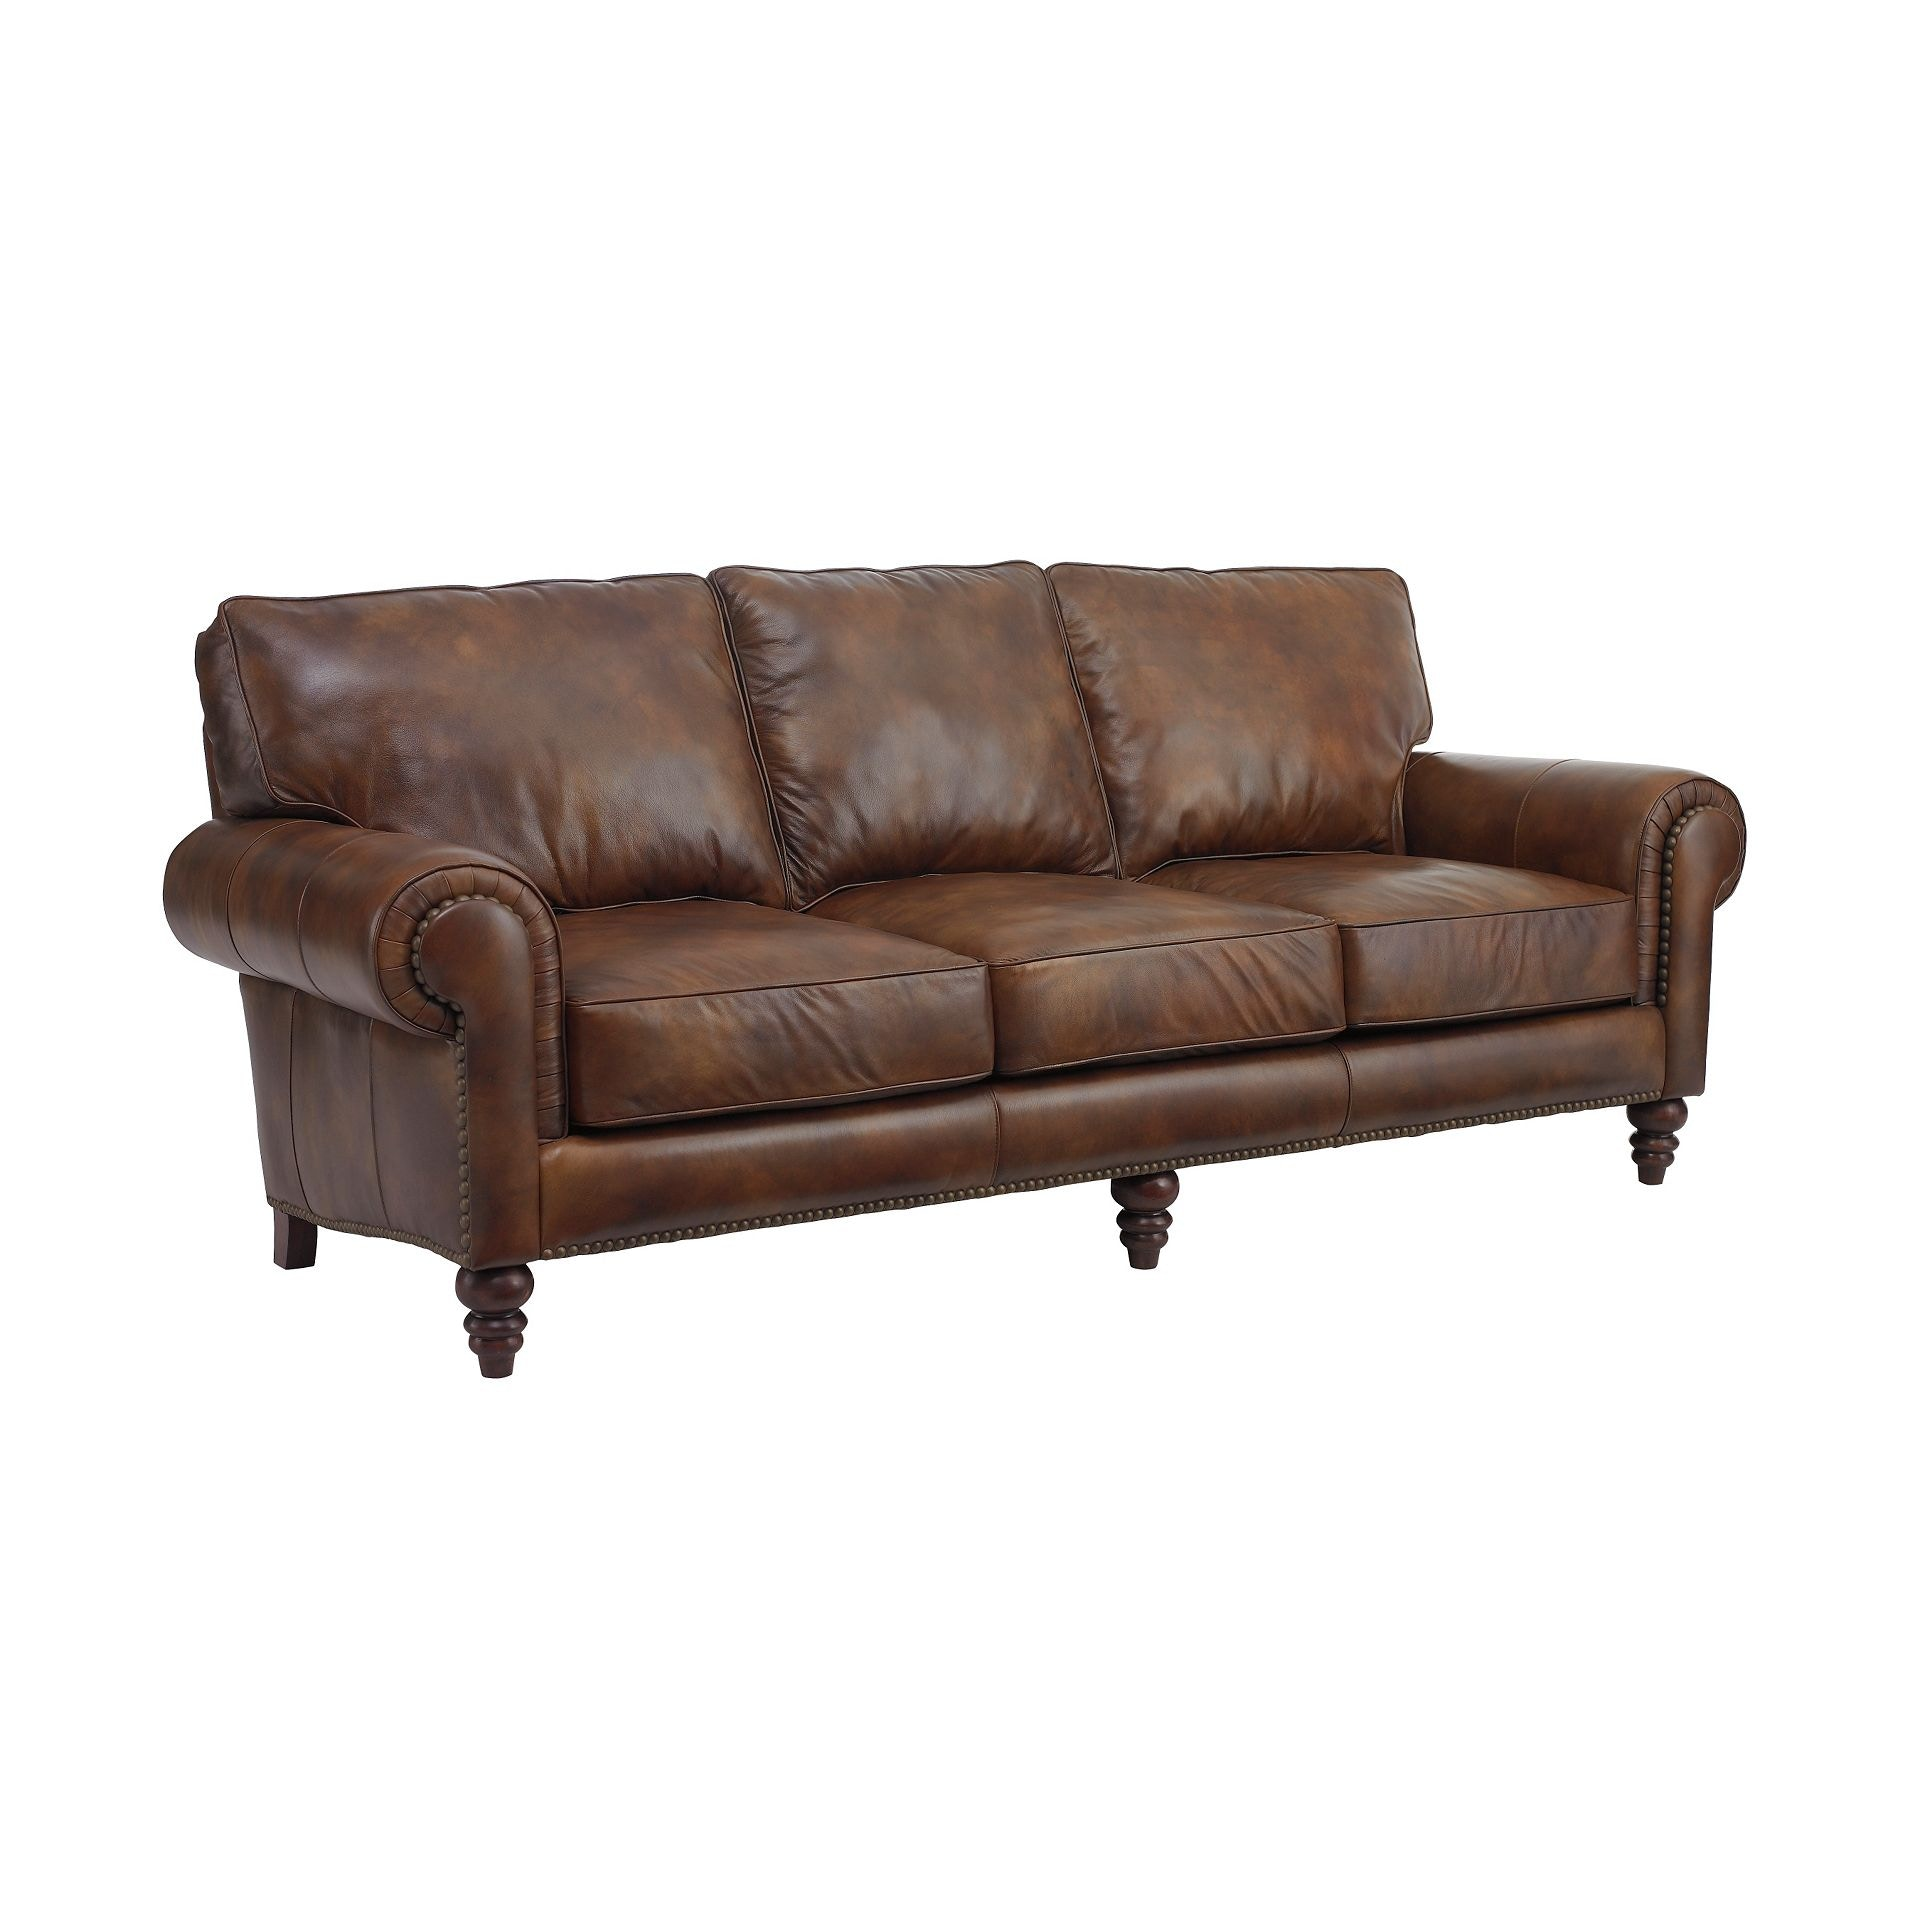 henredon sofa leather bean bags online india mathis